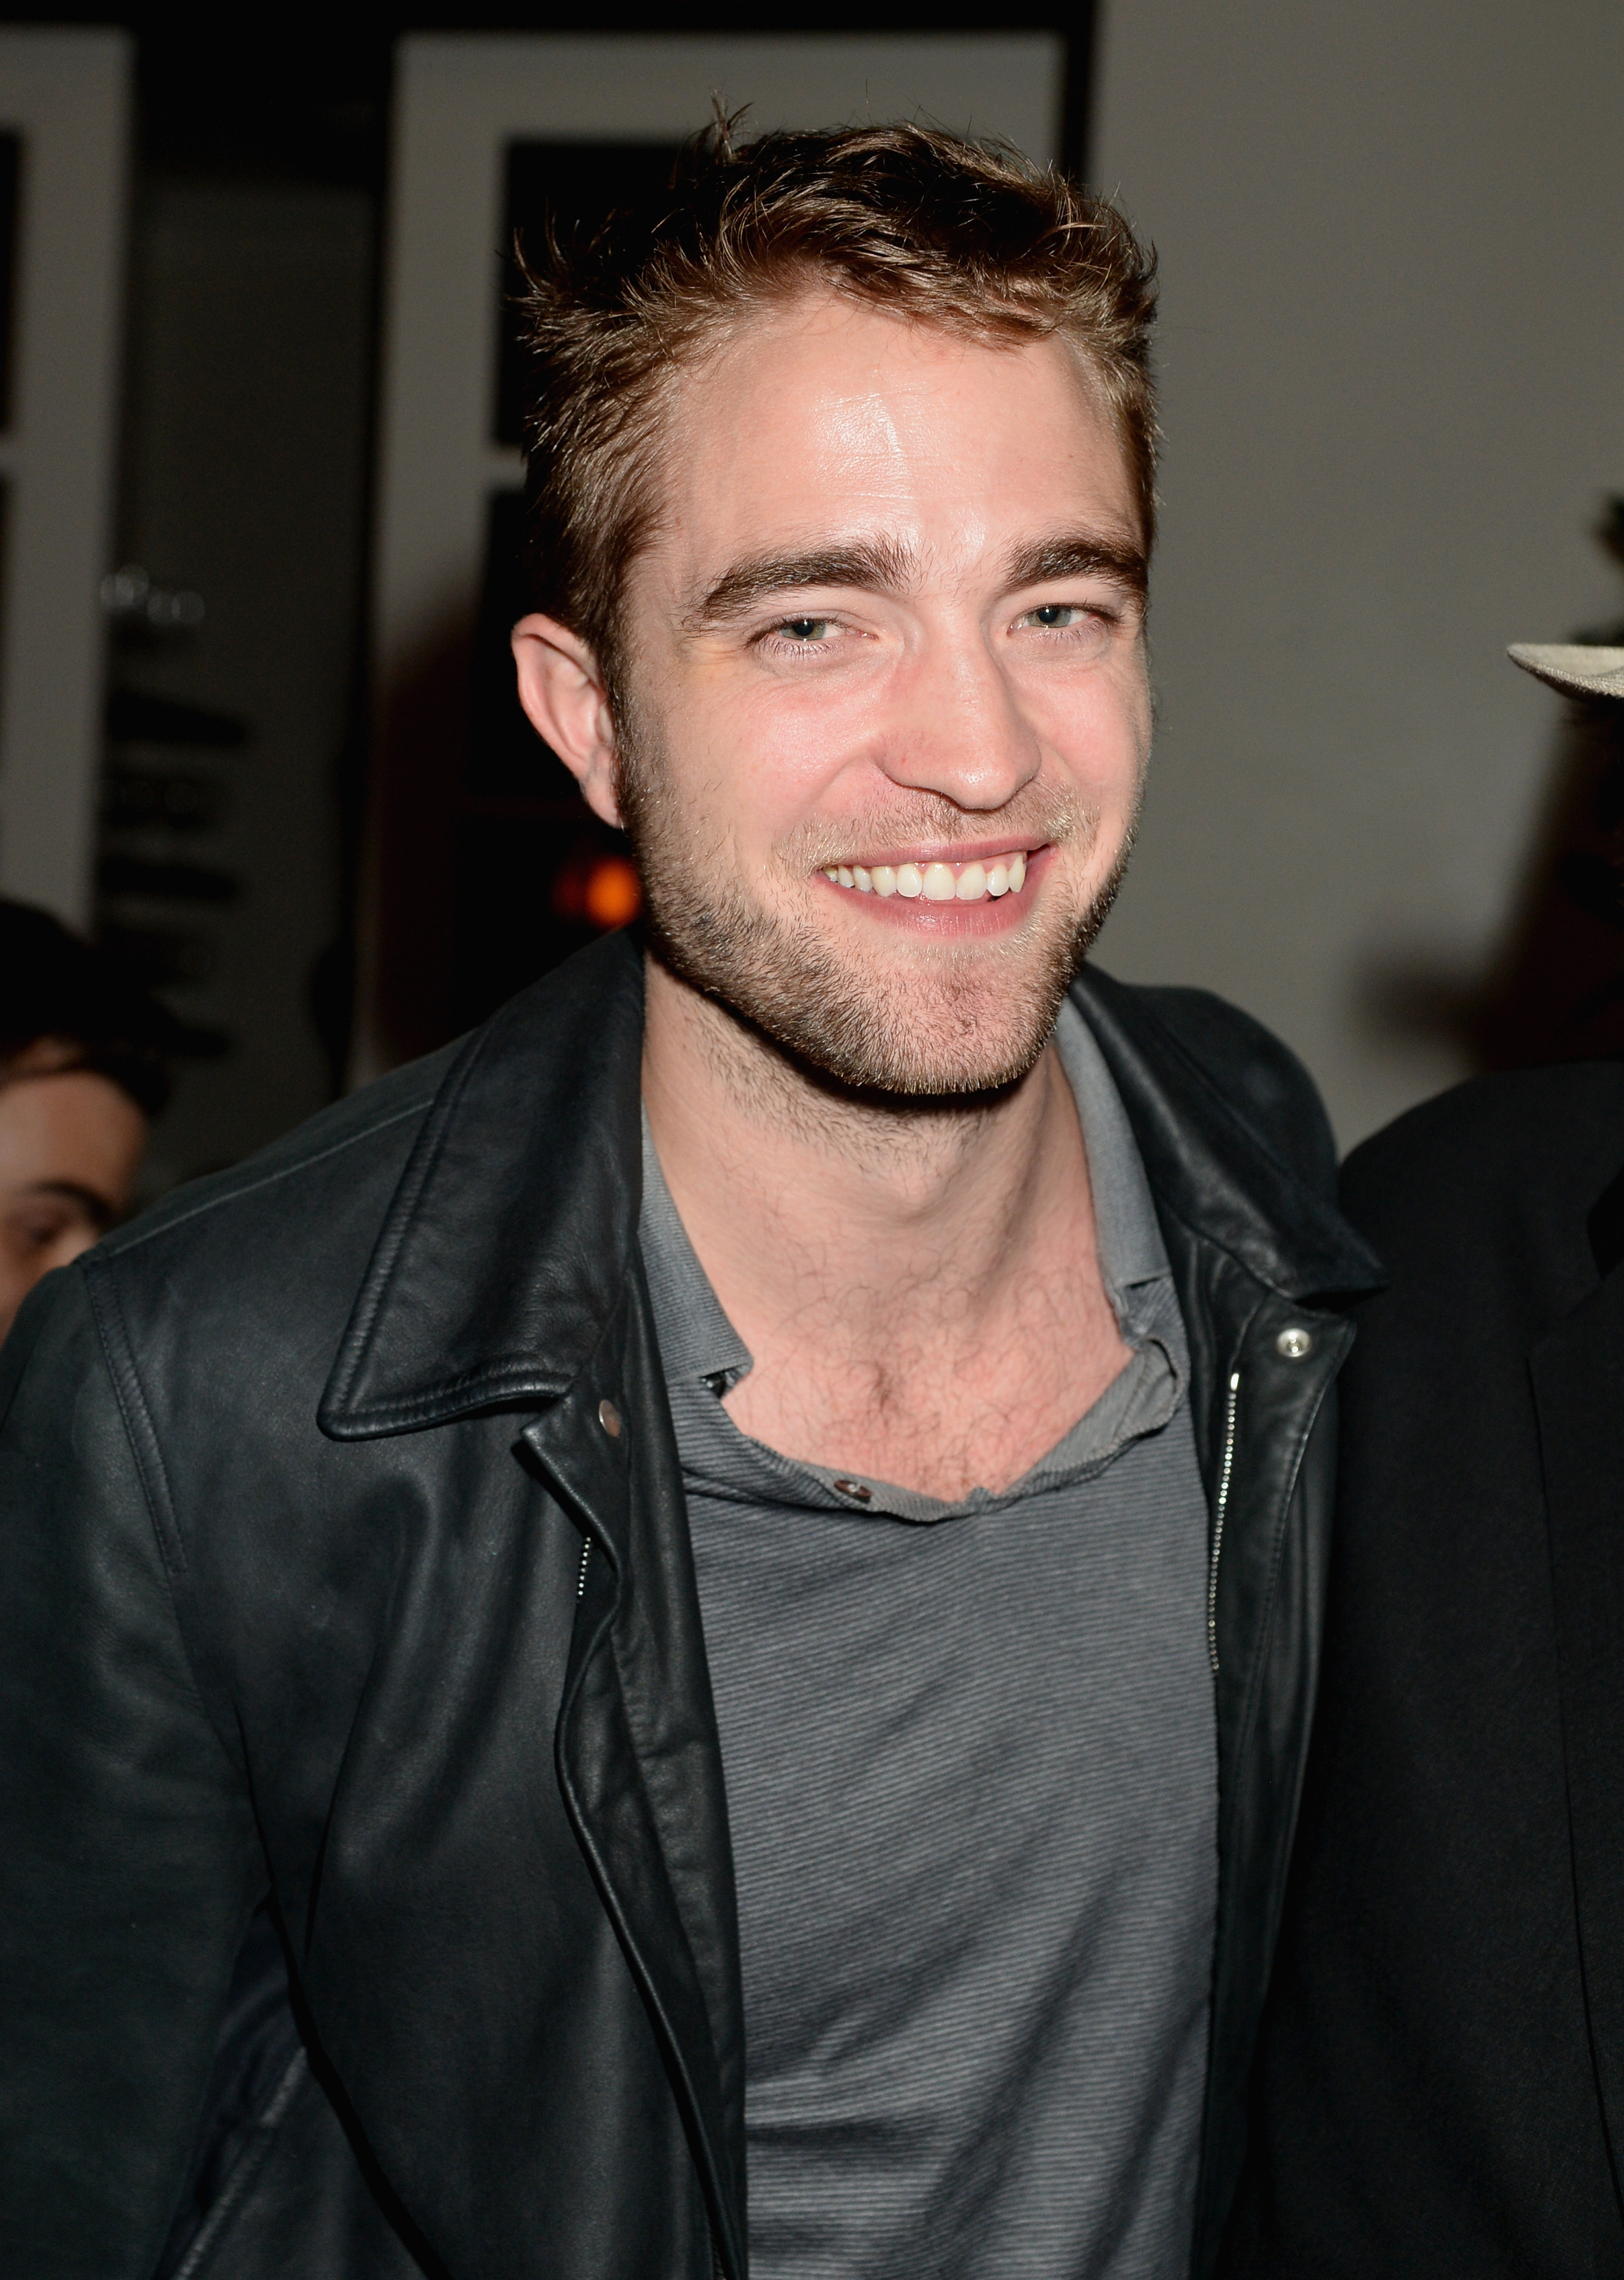 Robert Pattinson comparece a exibição de 'Seduced And Abandoned' em Los Angeles